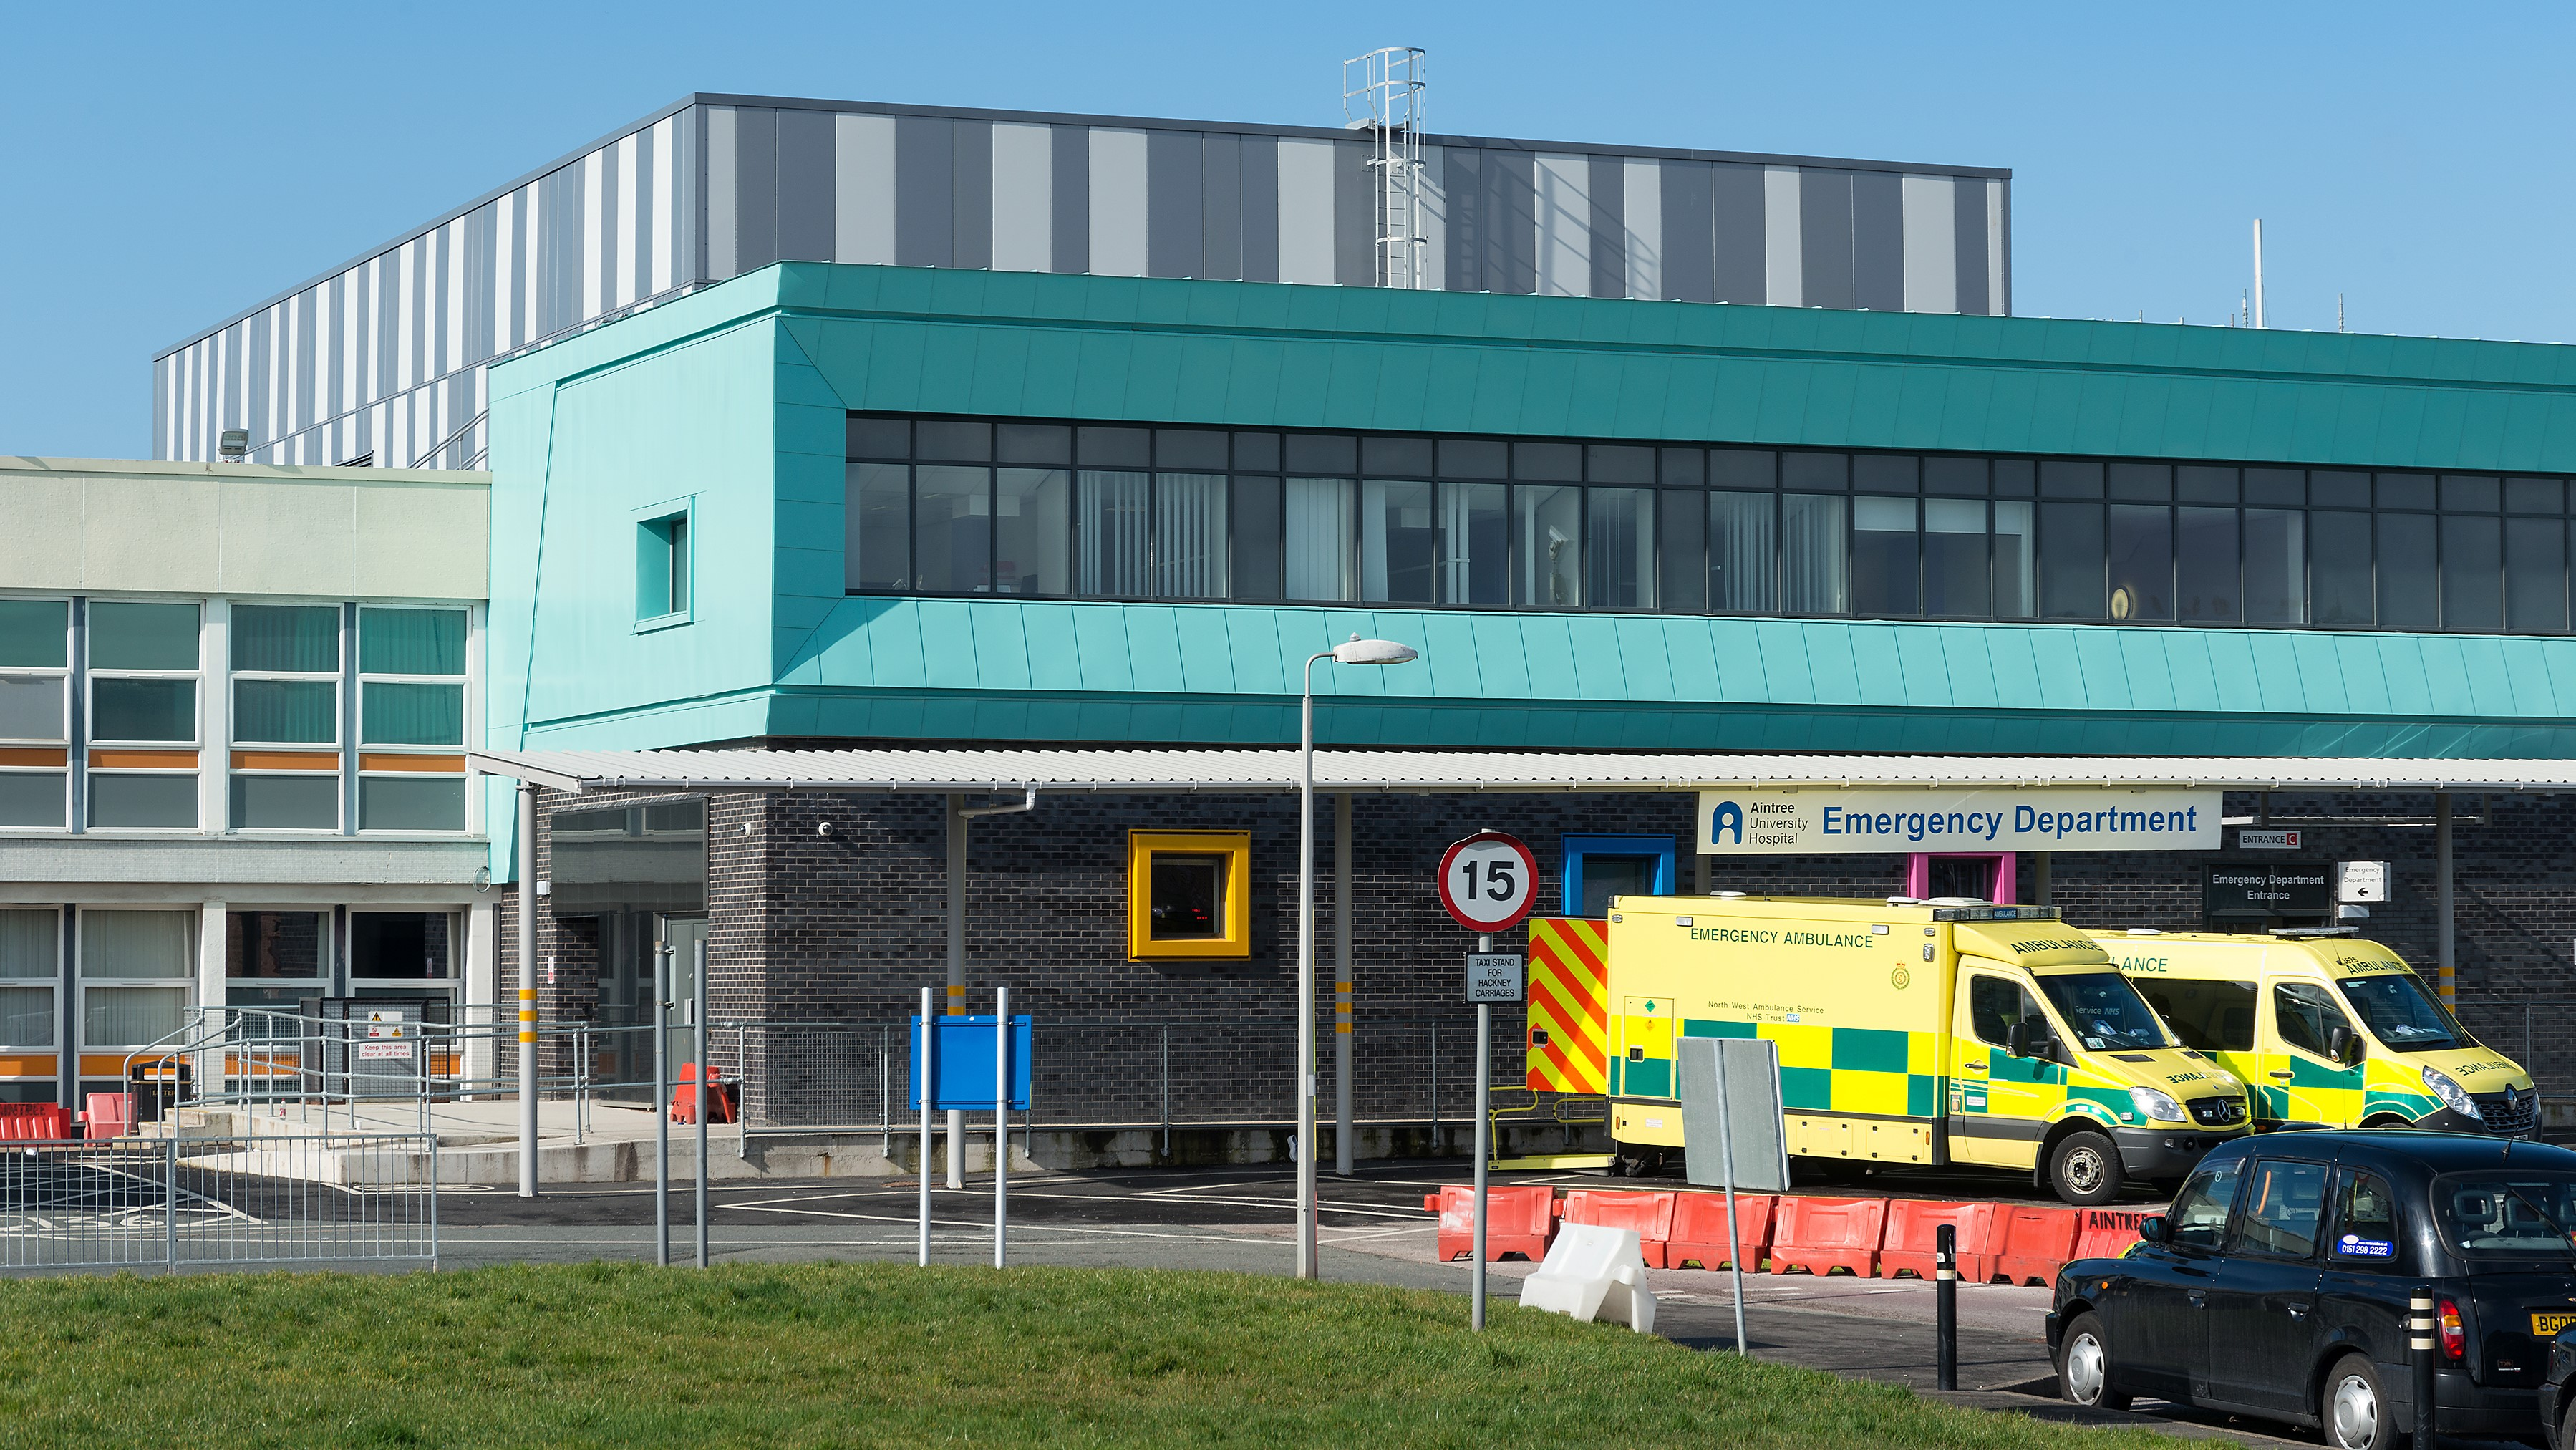 Aintree Hospital Reynolux Roofing Cladding Longworth Aintree Hospital Liverpool Fatra Optimo Traditional Textures (4)